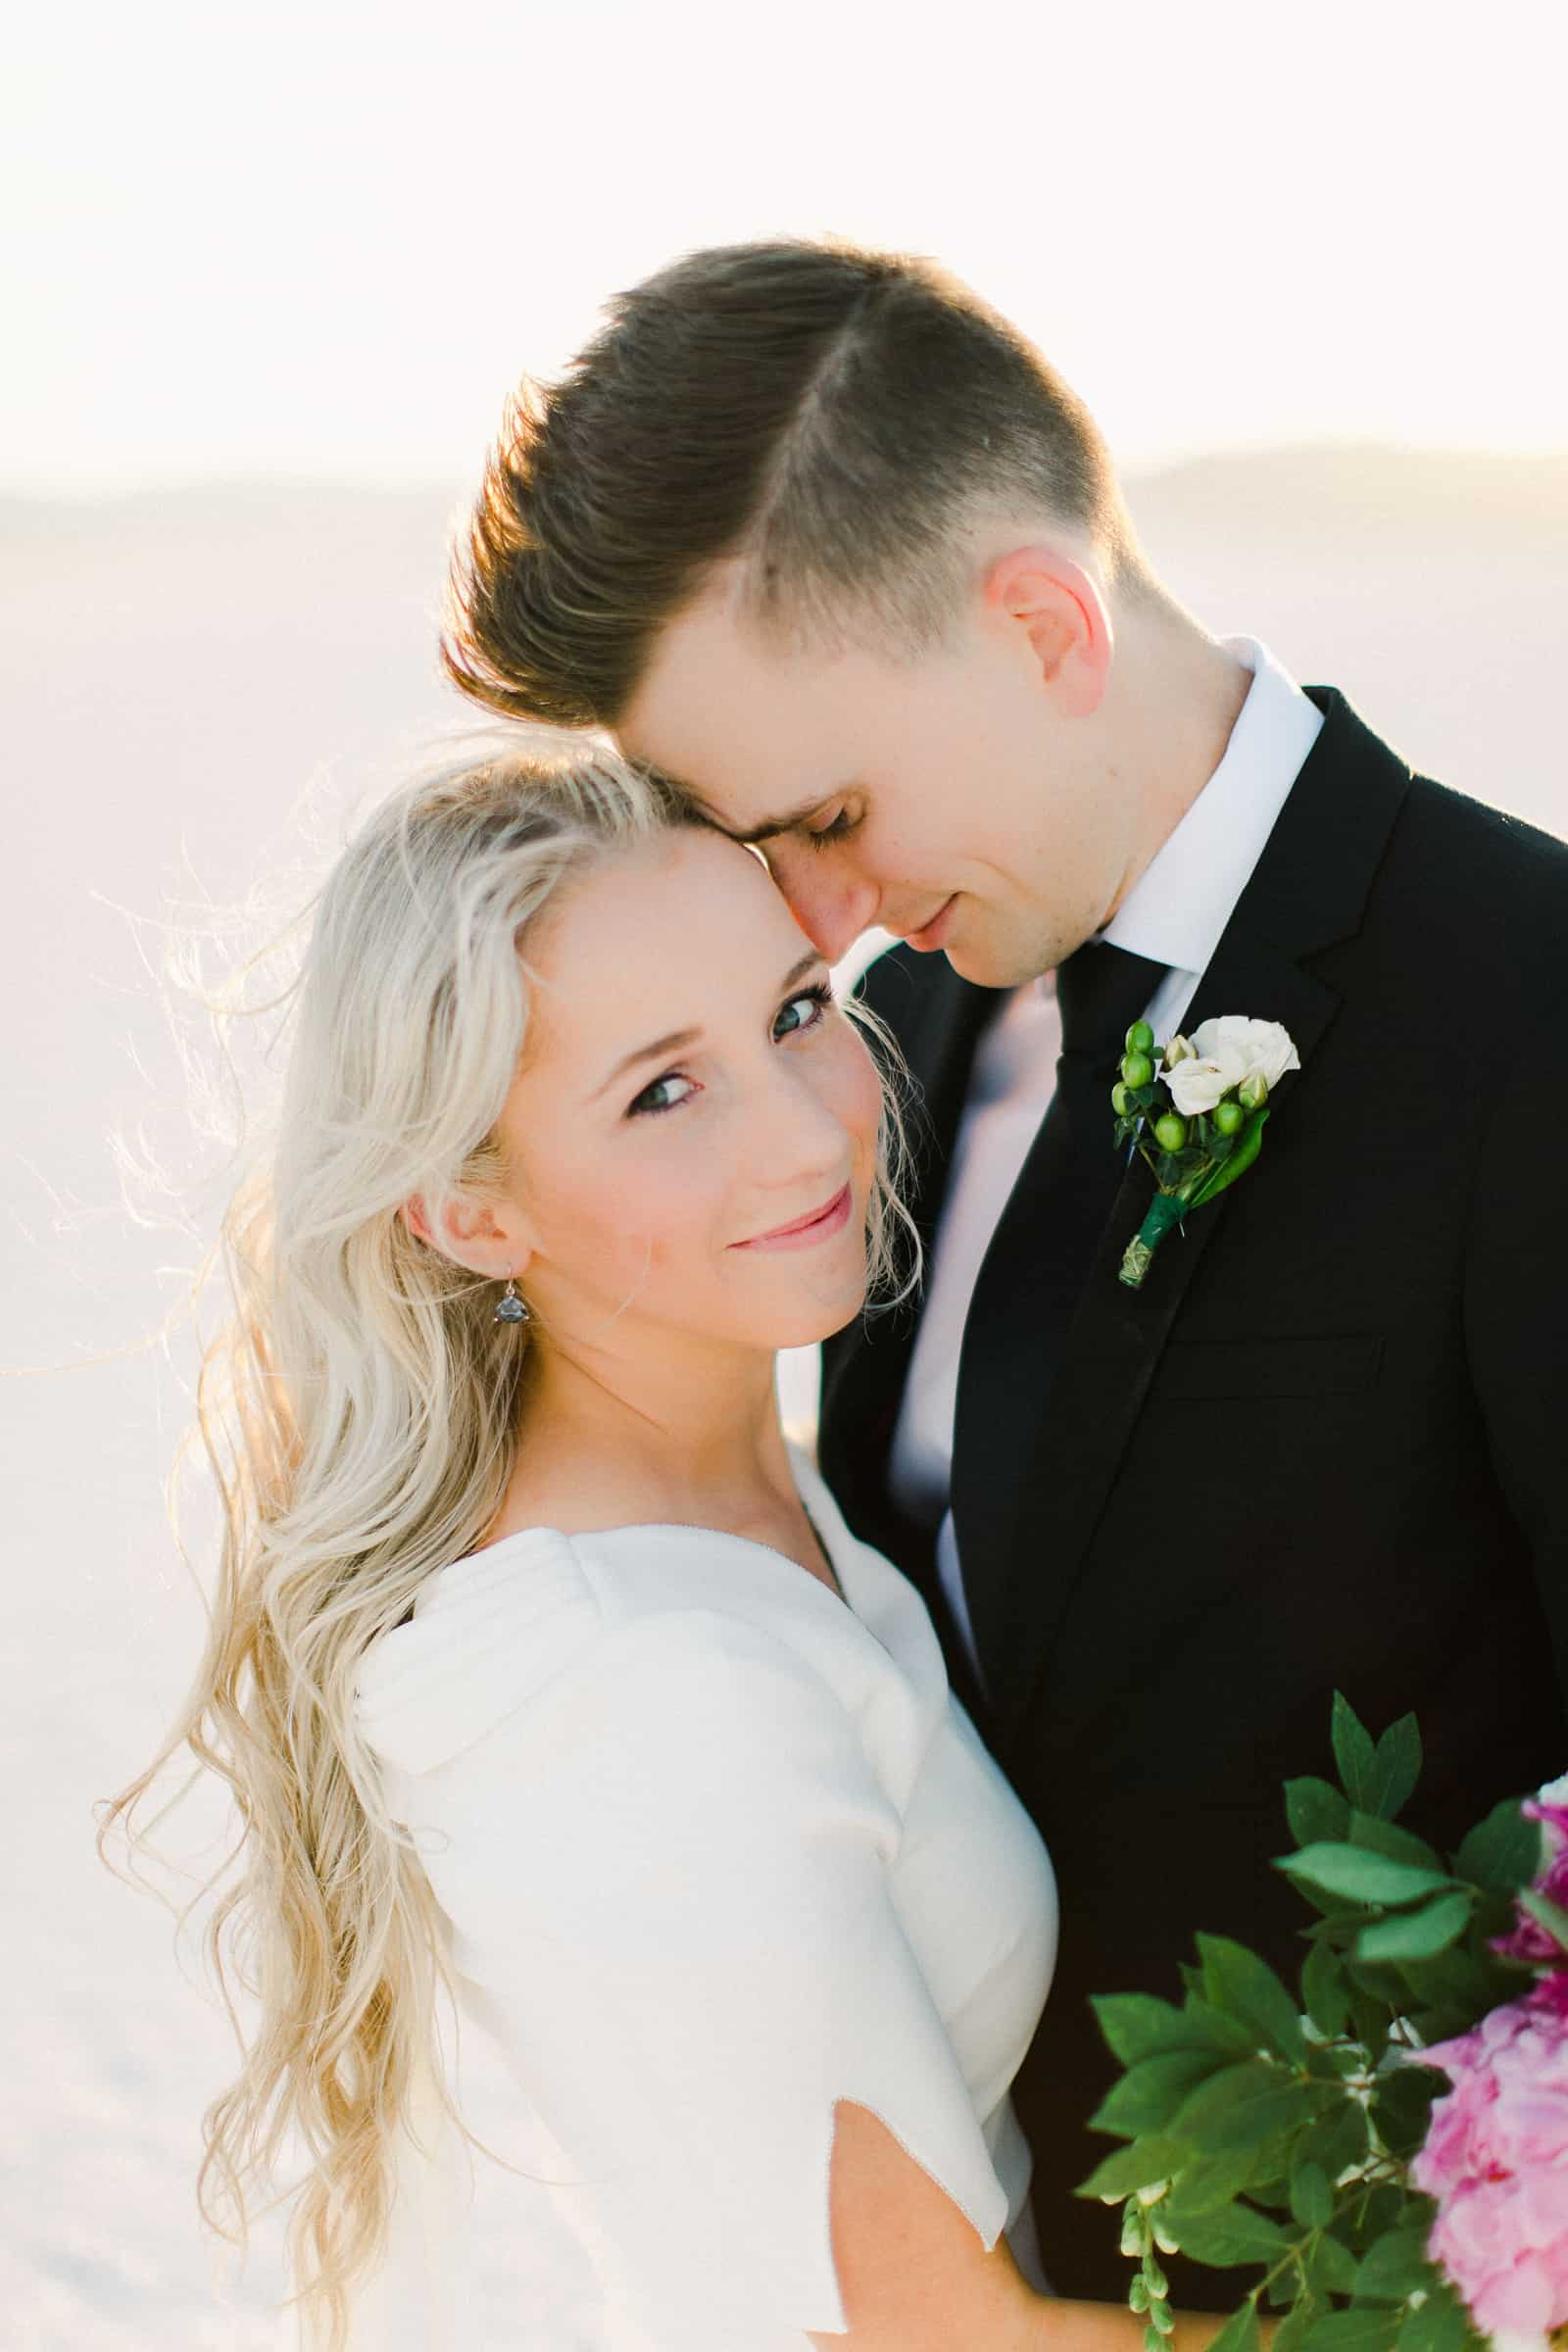 Bonneville Salt Flats Utah Wedding Photography, destination wedding, bride and groom first look, beautiful bride, long bridal hairstyle